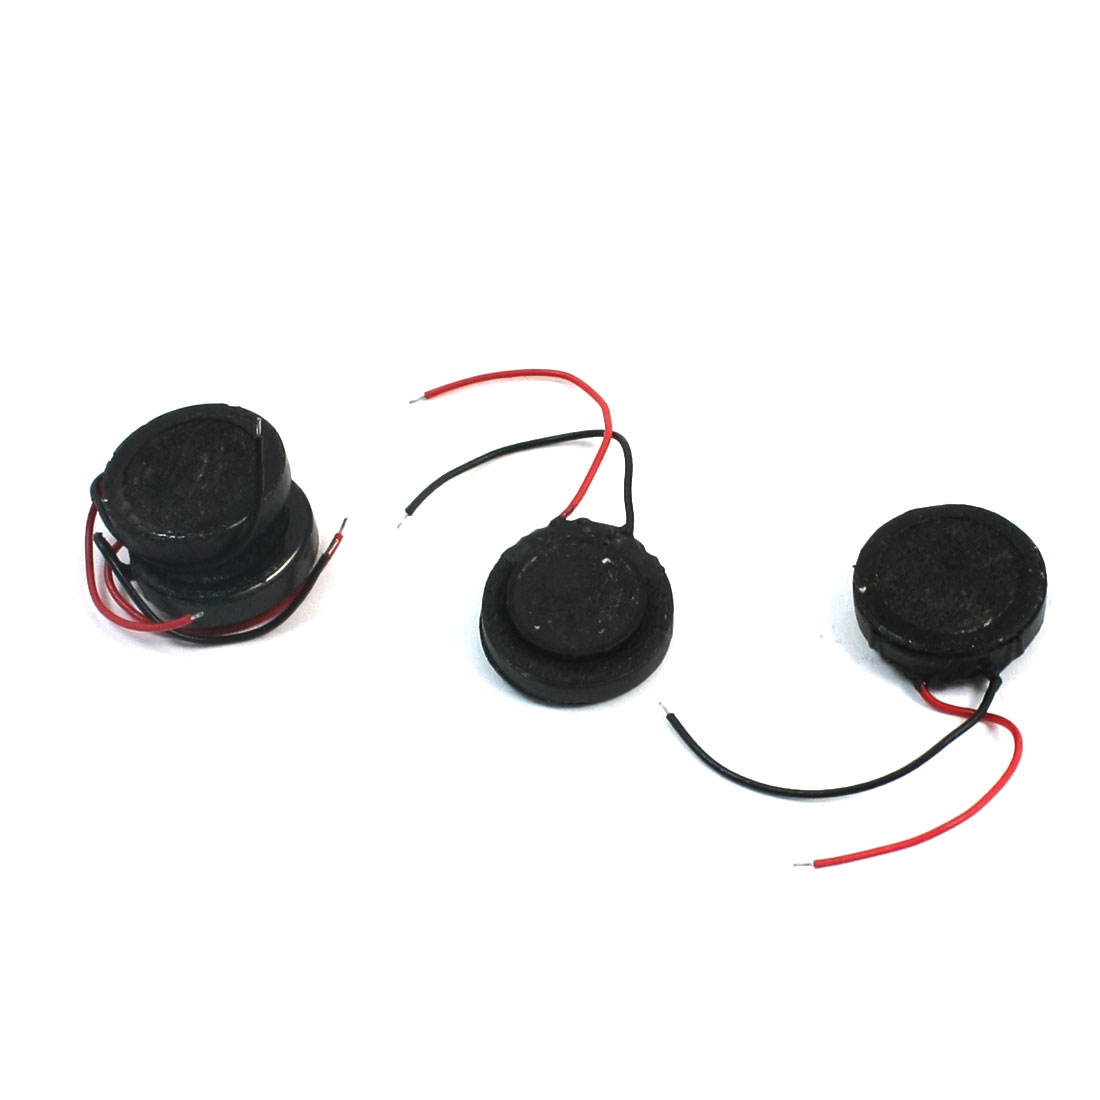 4Pcs 1W 8 Ohm Dual Wire Self-adhesive Type Round Mini Magnetic Phone MP3 MP4 Player Speaker 13mm Dia